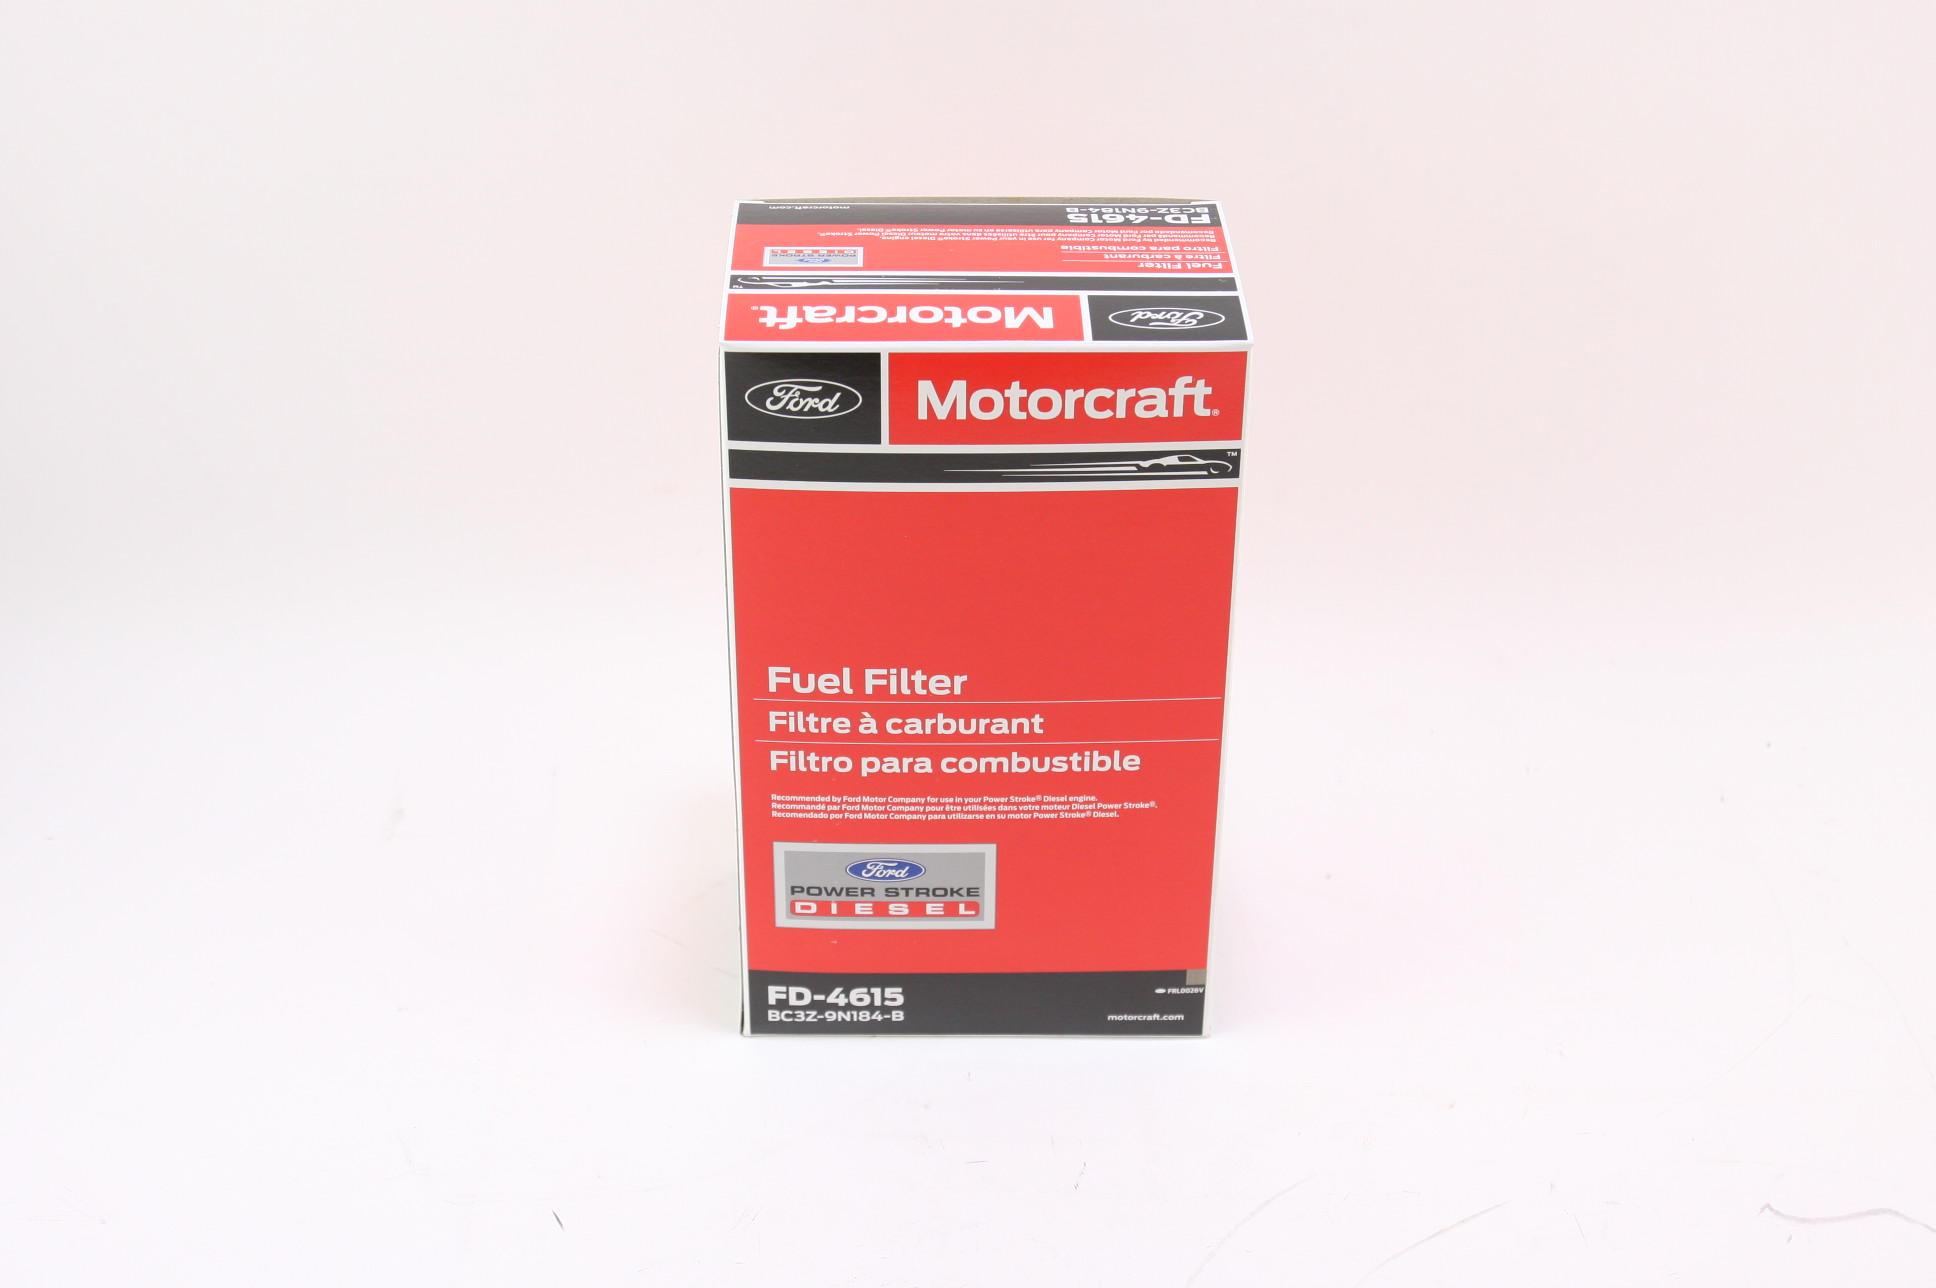 Set of 5 Ford Motorcraft FD4615 Fuel Filter 11-13 6.7L DIESEL BC3Z9N184B NIP - image 5